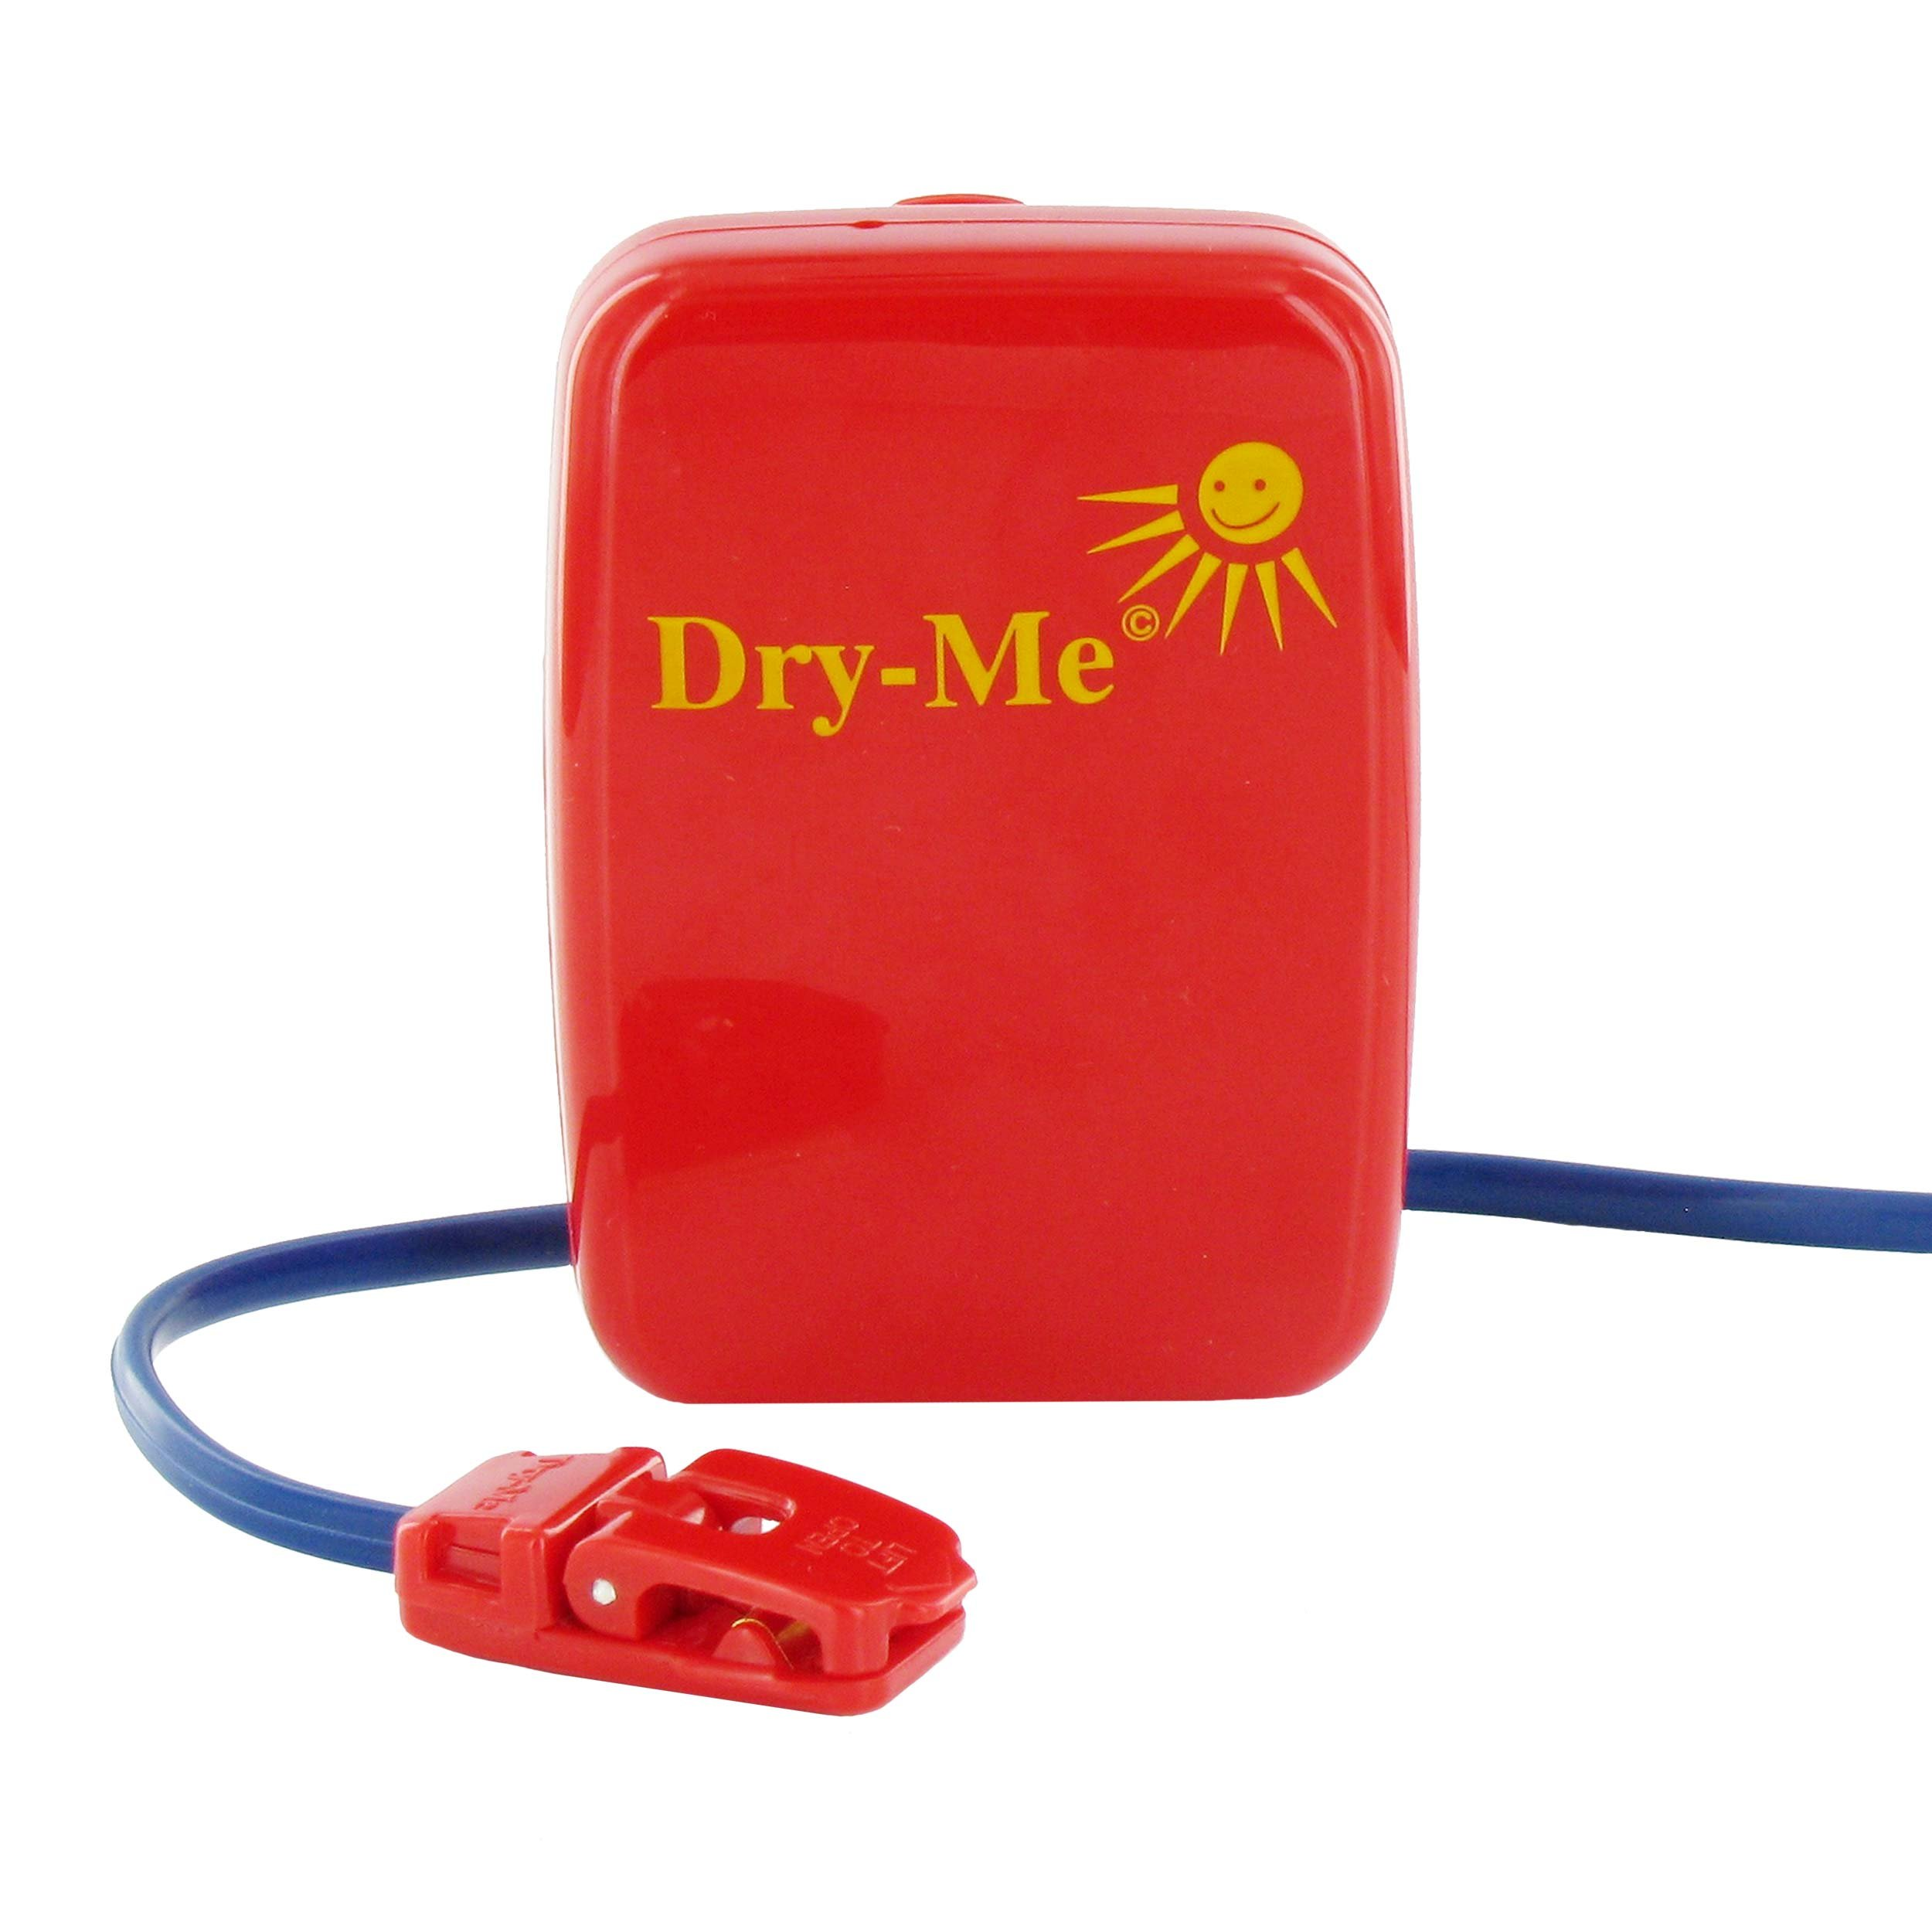 Dry-Me Bed Wetting Alarm (Sound & Vibration) to Cure Bedwetting by Dry-Me